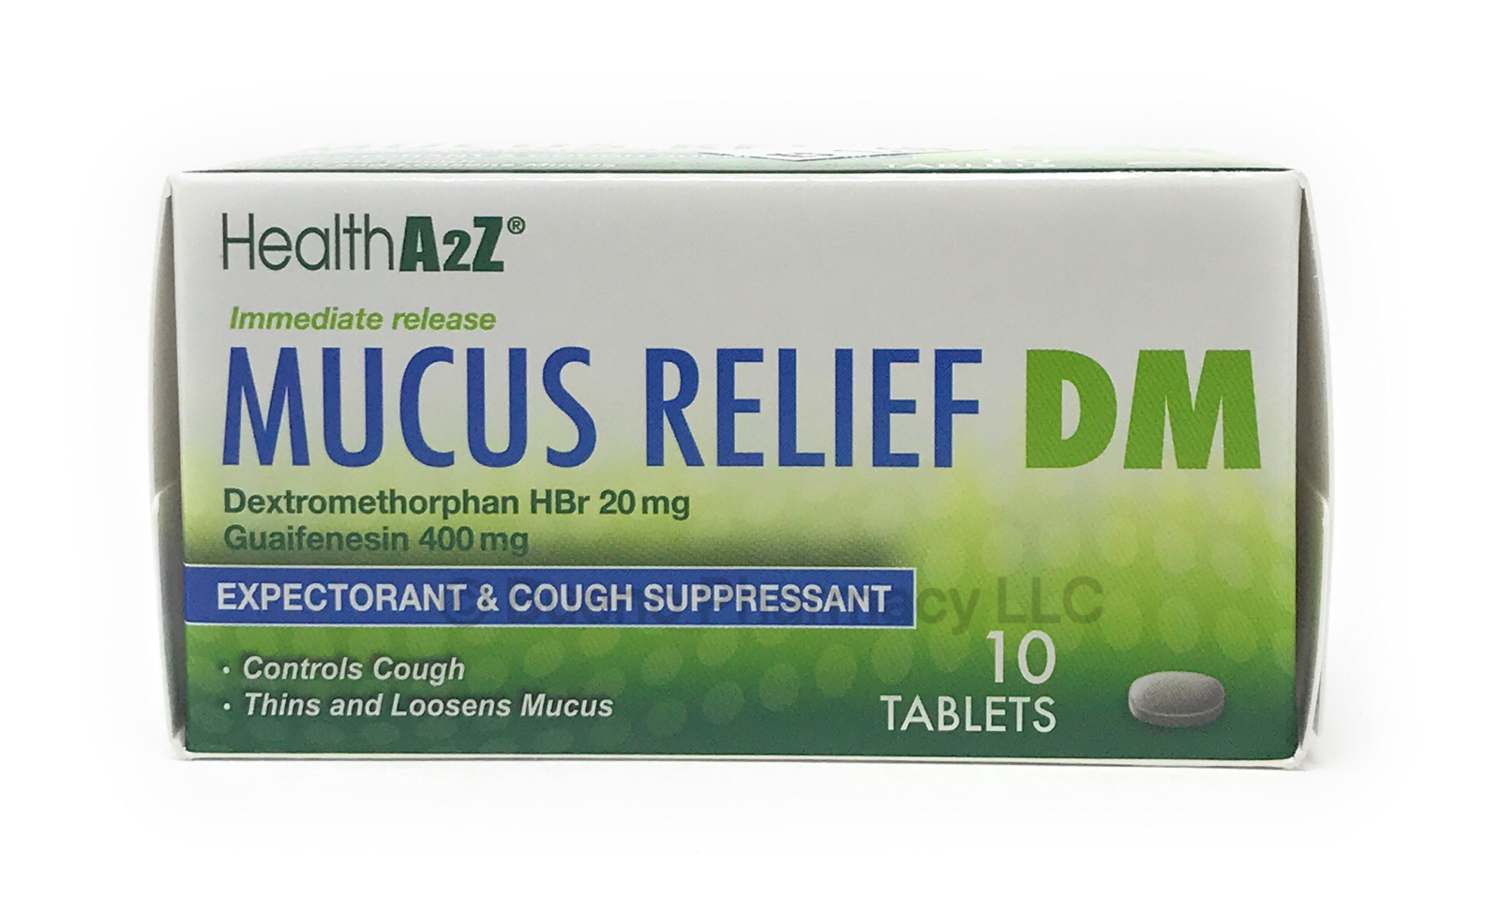 MUCUS RELIEF DM    A&Z 10 TABLETS